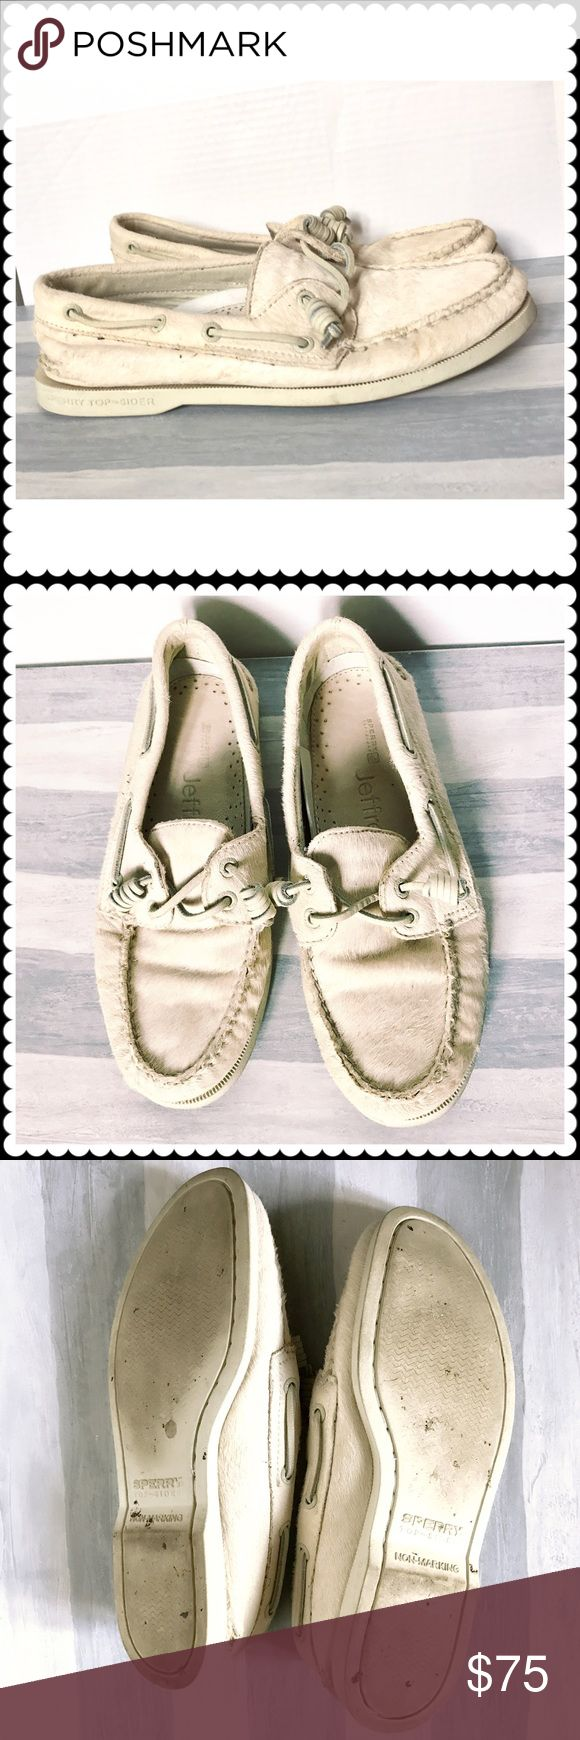 Sperry for Jeffrey off white pony fur boat shoes. Men's Sperry for Jeffrey off white pony (cow) fur boat shoes.  Size 7 men's. Fits size 9 women. Worn a handful times. They never made women's version in white pony so I bought men's but they are a bit big for me. Sperry Top-Sider Shoes Boat Shoes